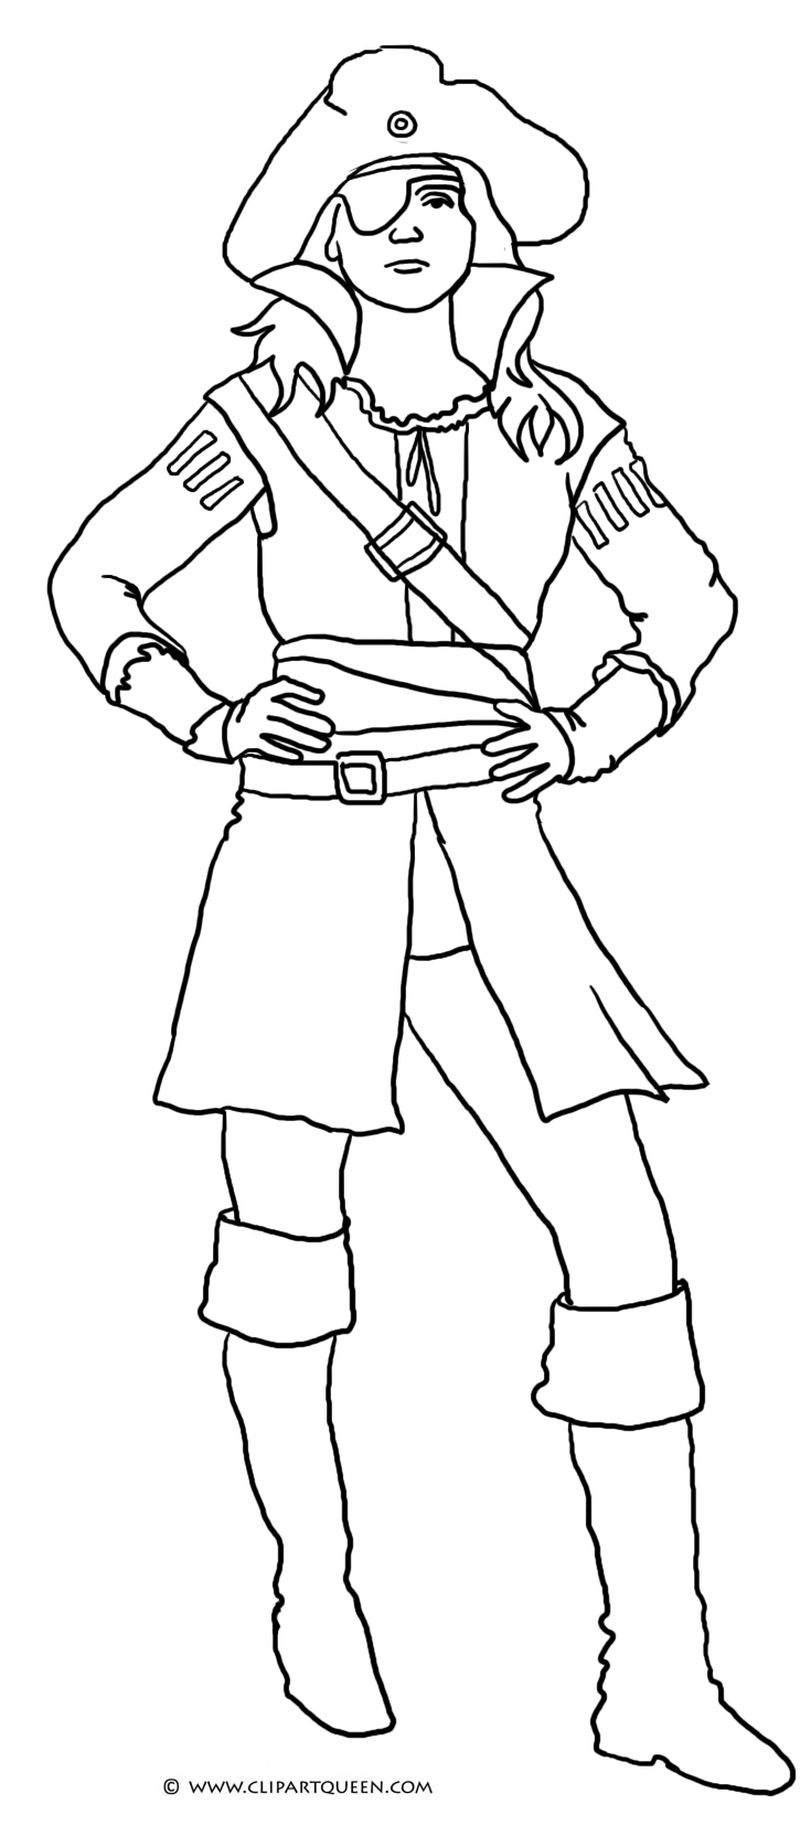 Pirate Coloring Pages Preschool